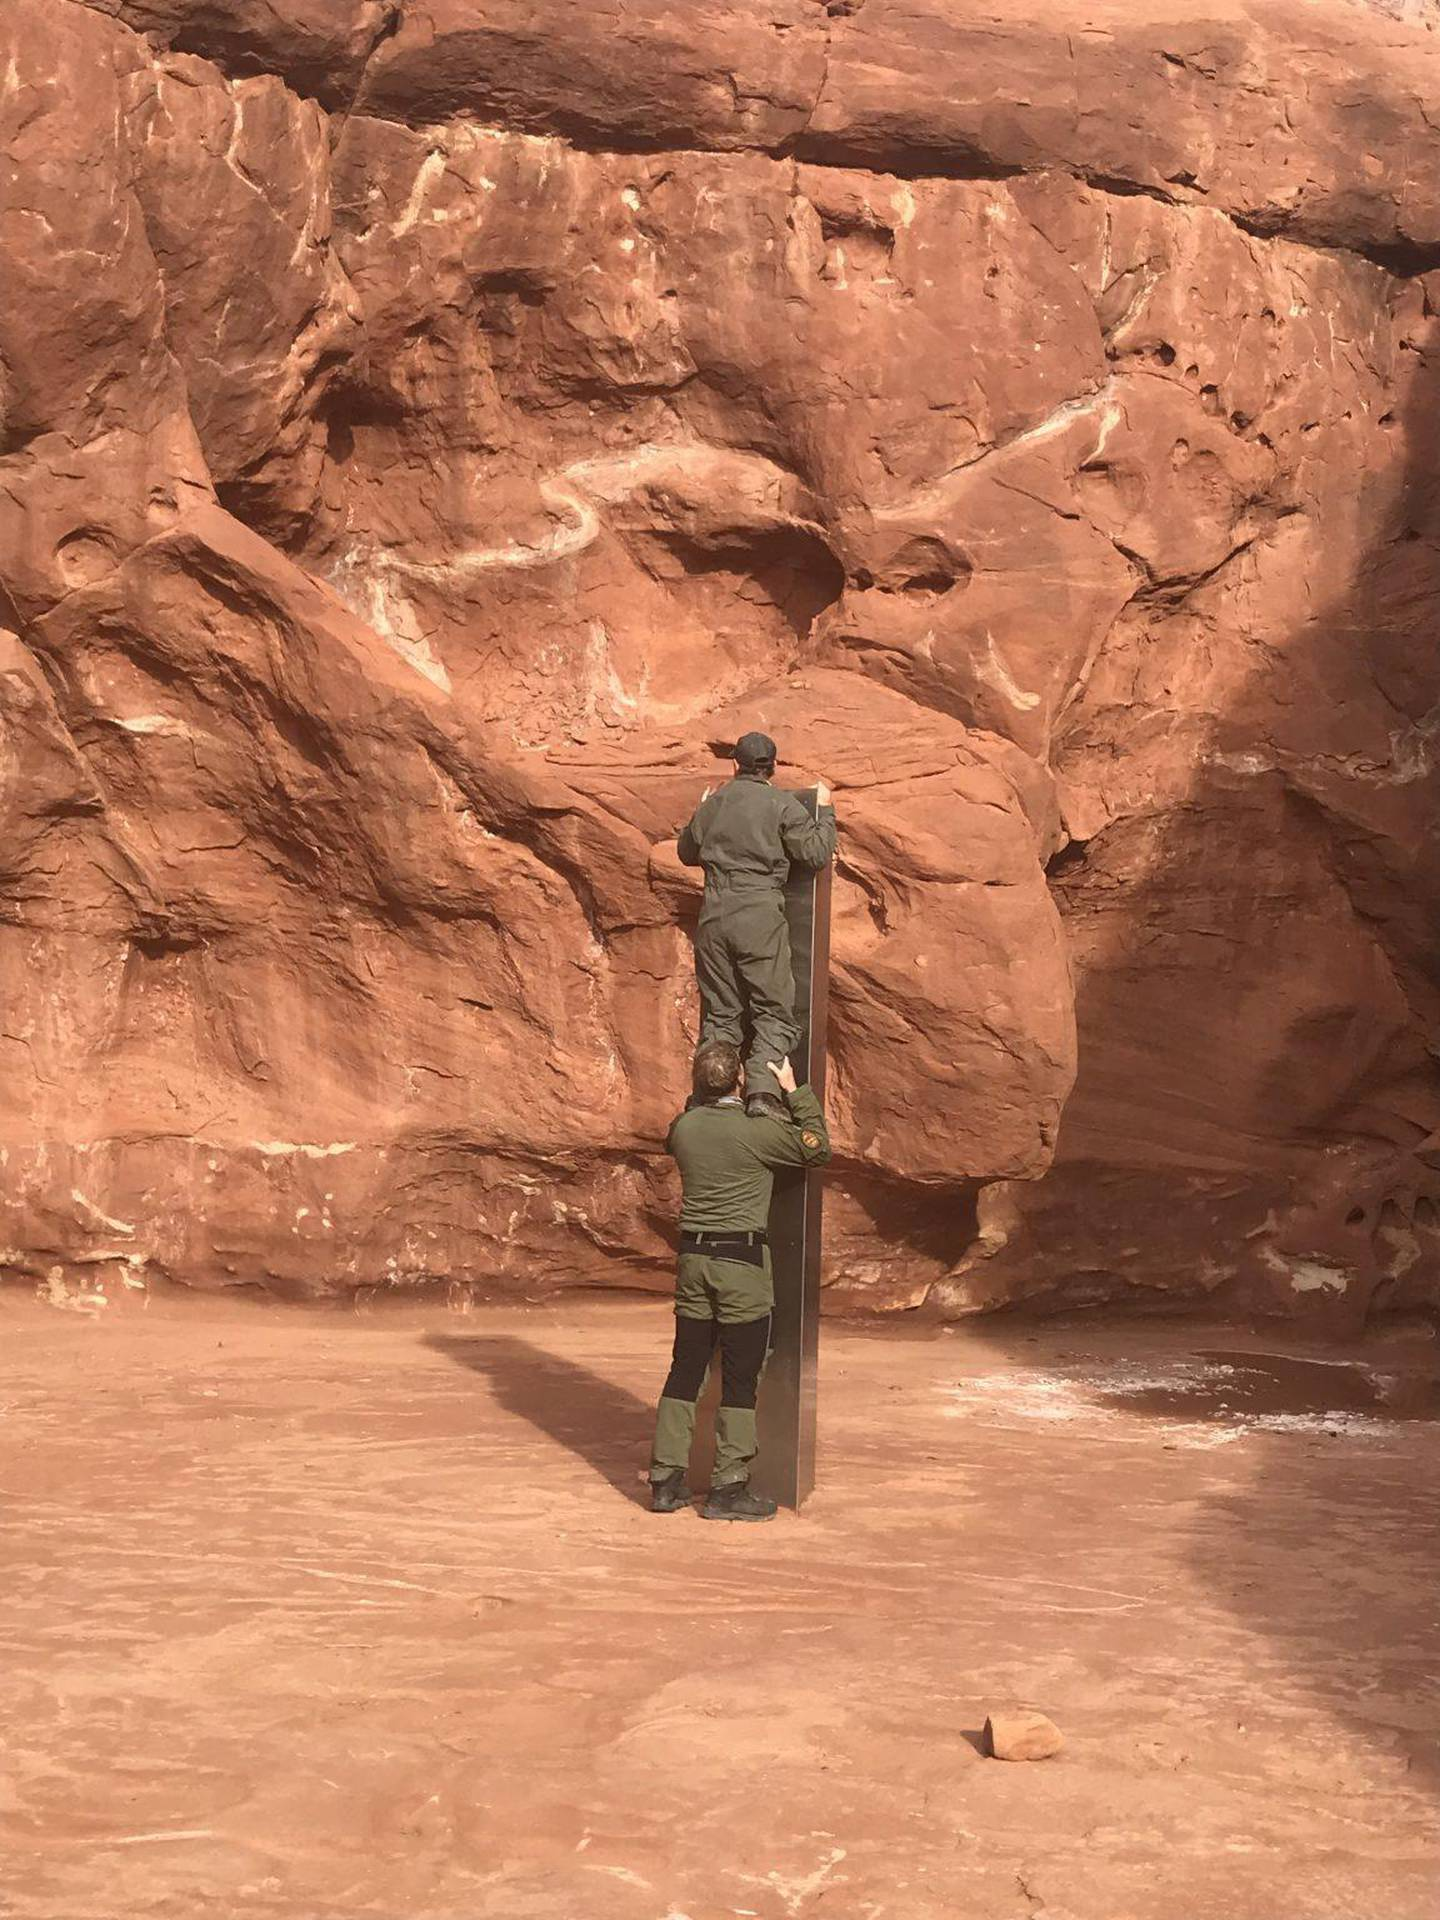 epa08839417 A handout photo made available by the Utah Department of Public Safety (DPS) shows wildlife officials inspecting a monolith discovered in southeastern Utah, USA, 18 November 2020 (issued 24 November 2020). According to a statement by DPS, Utah officials have discovered a monolith of unknown origin in the wild.  EPA/Utah Department of Public Safety HANDOUT  HANDOUT EDITORIAL USE ONLY/NO SALES